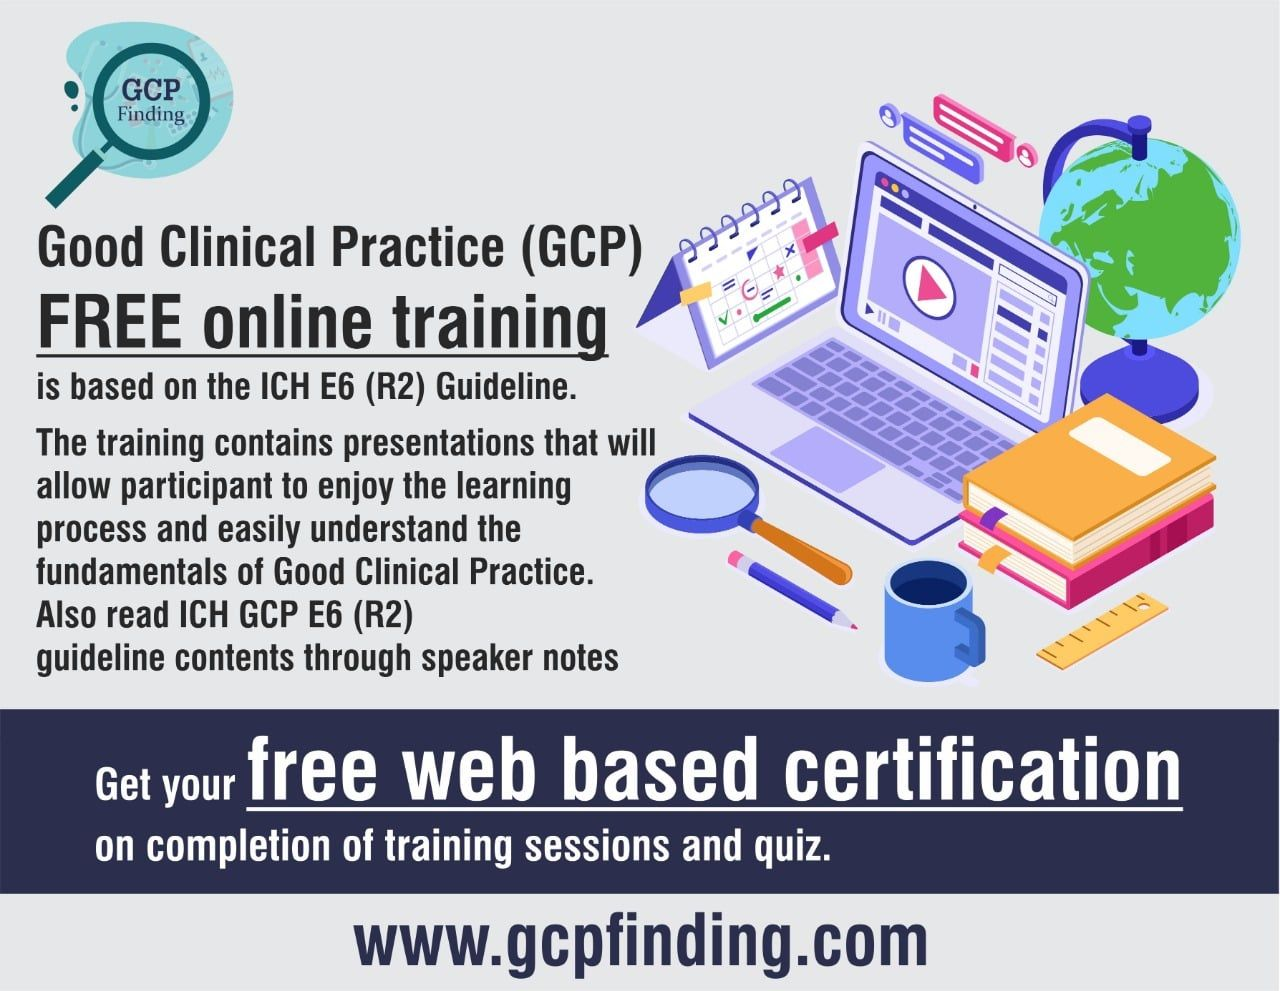 Good Clinical Practice Gcp Free Online Training Is Based On The Ich E6 R2 Guideline In 2020 Online Training Clinic Drug Discovery